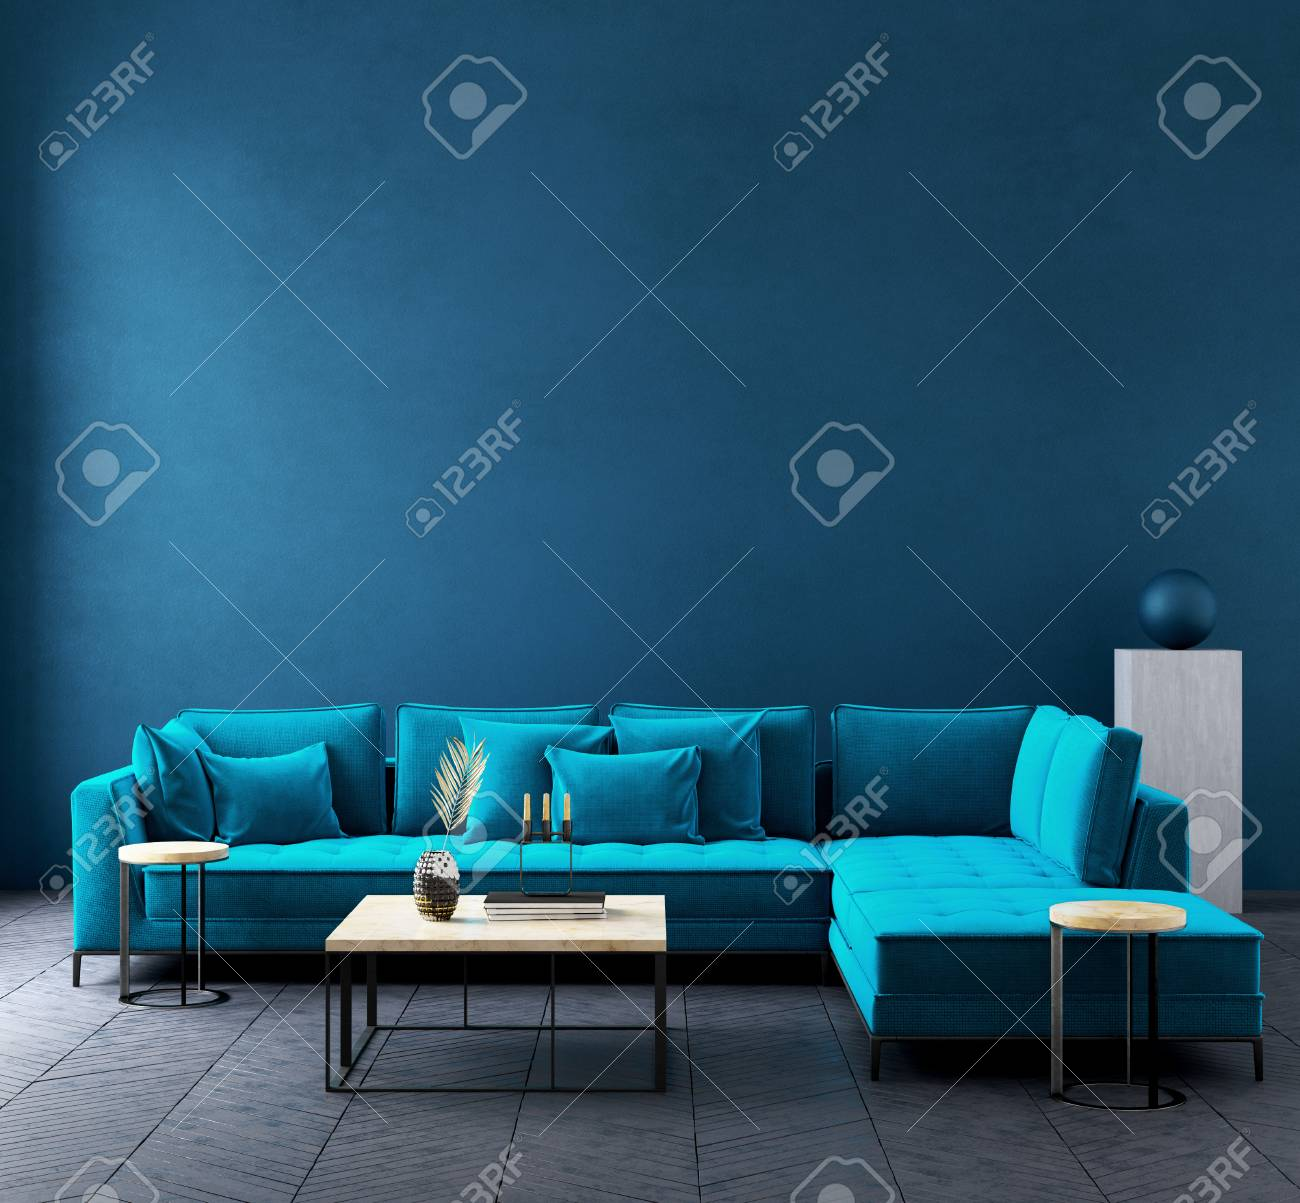 Modern Dark Blue Living Room Interior With Azure Color Couch Wall